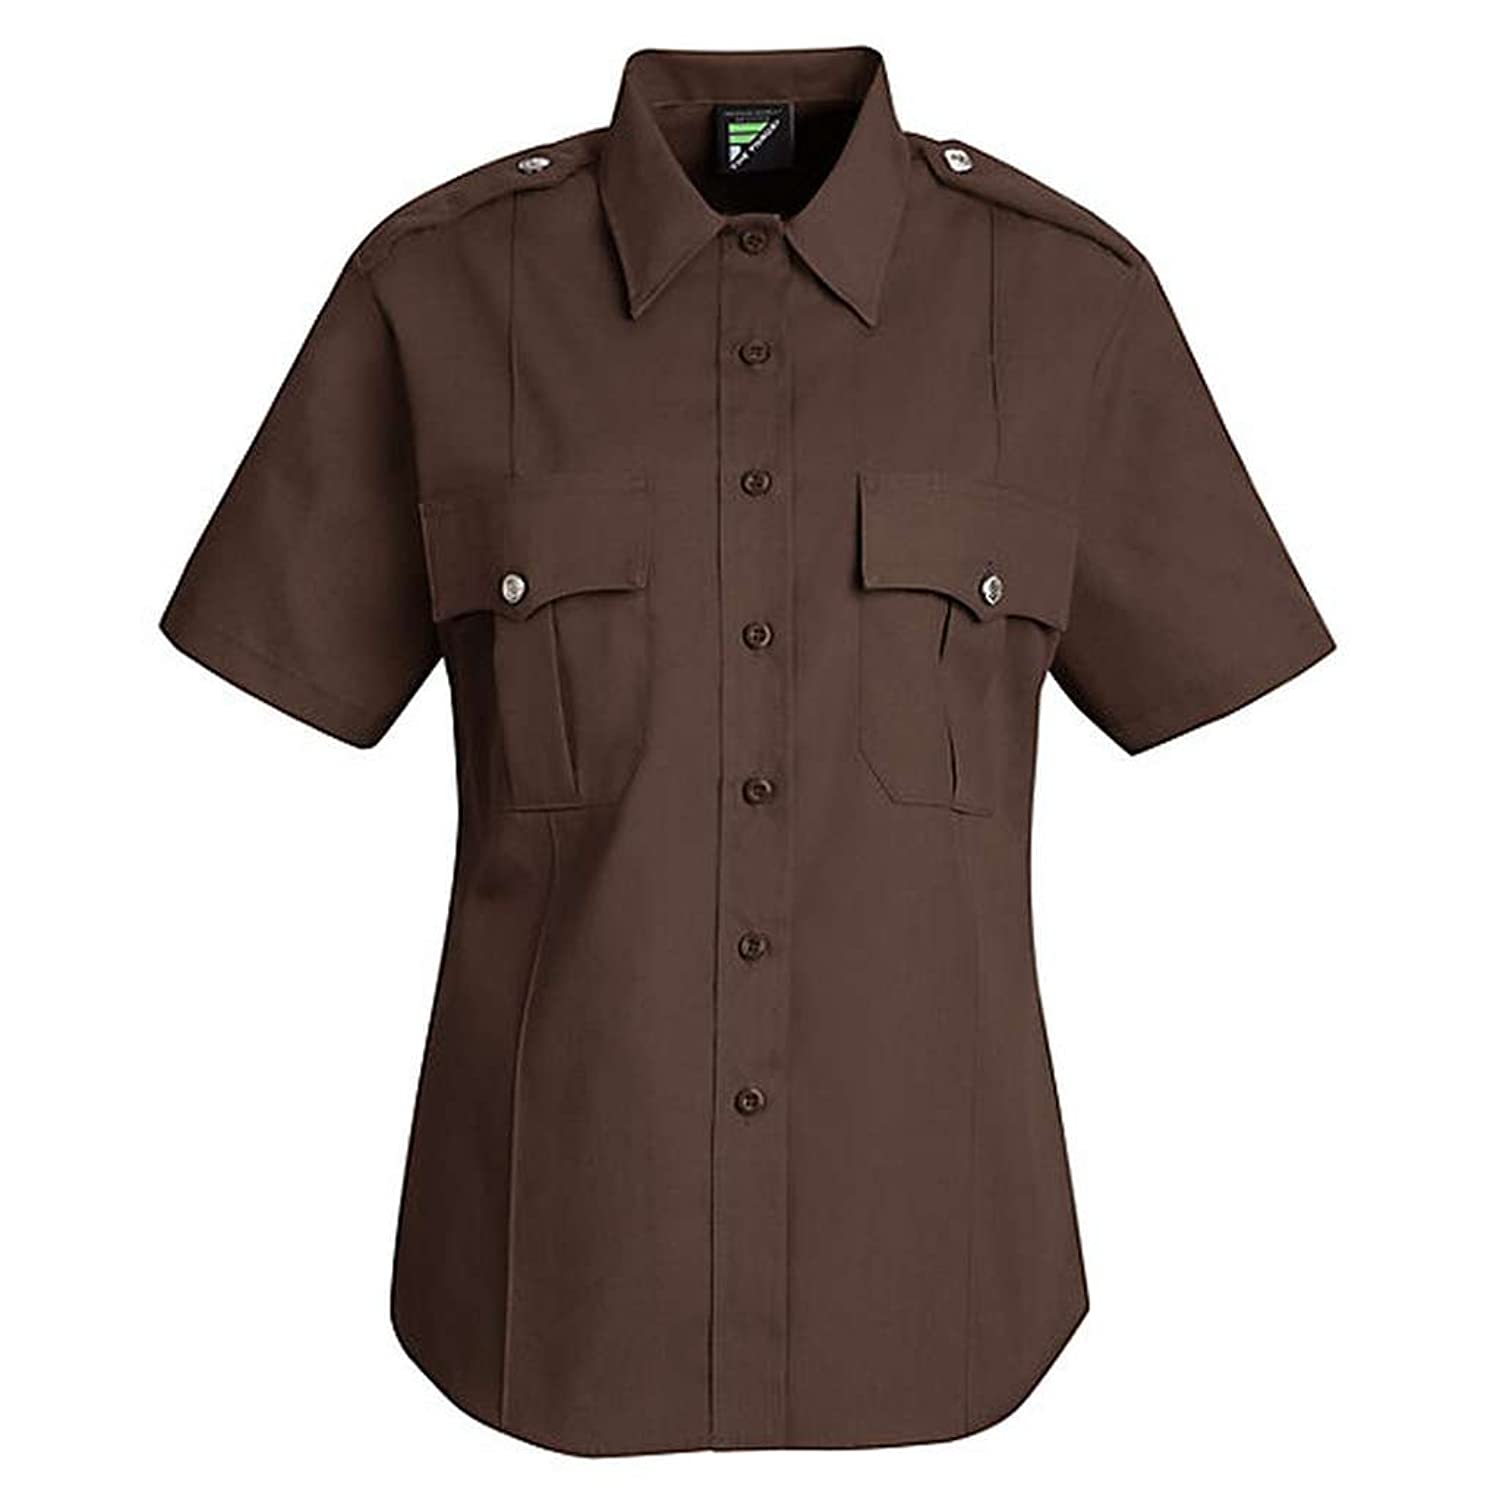 Horace Small Deputy Deluxe Shirt, Brown, SSXXL